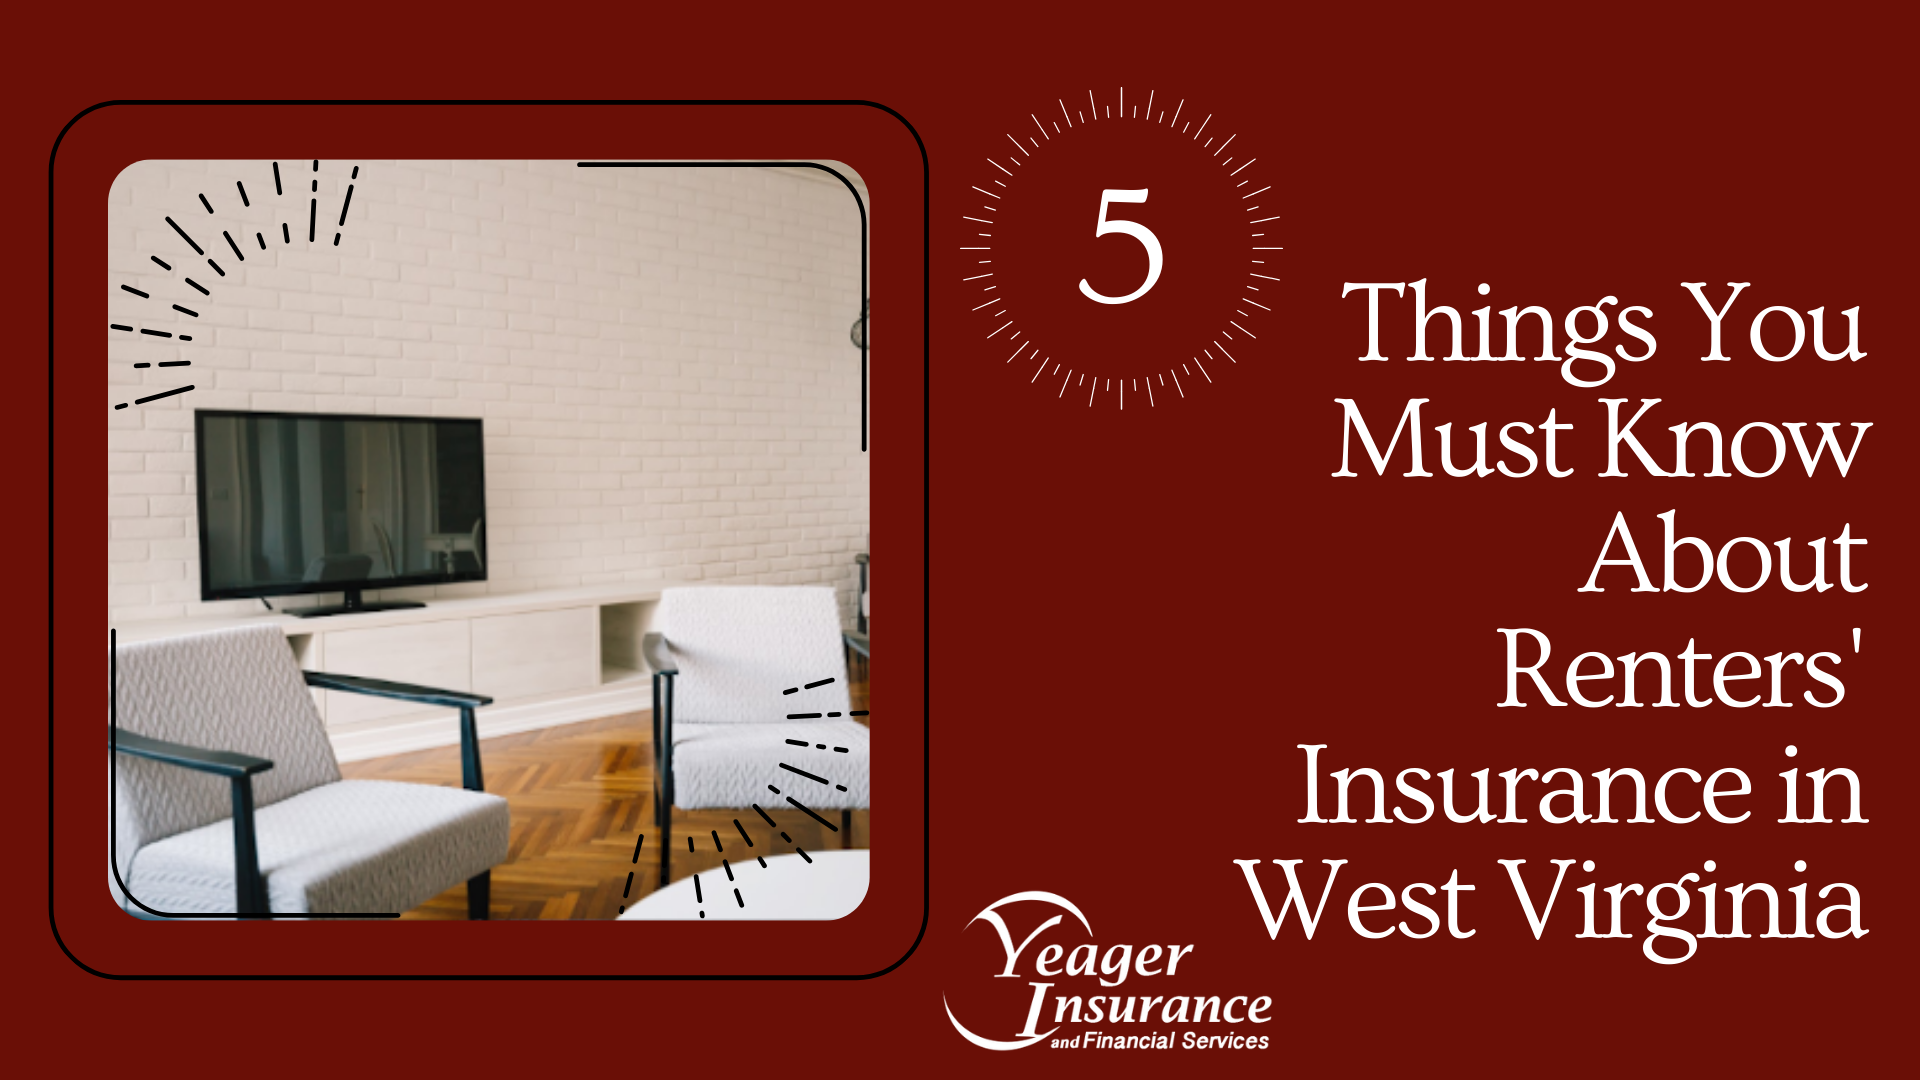 5 Things You Must Know About Renters Insurance in West Virginia